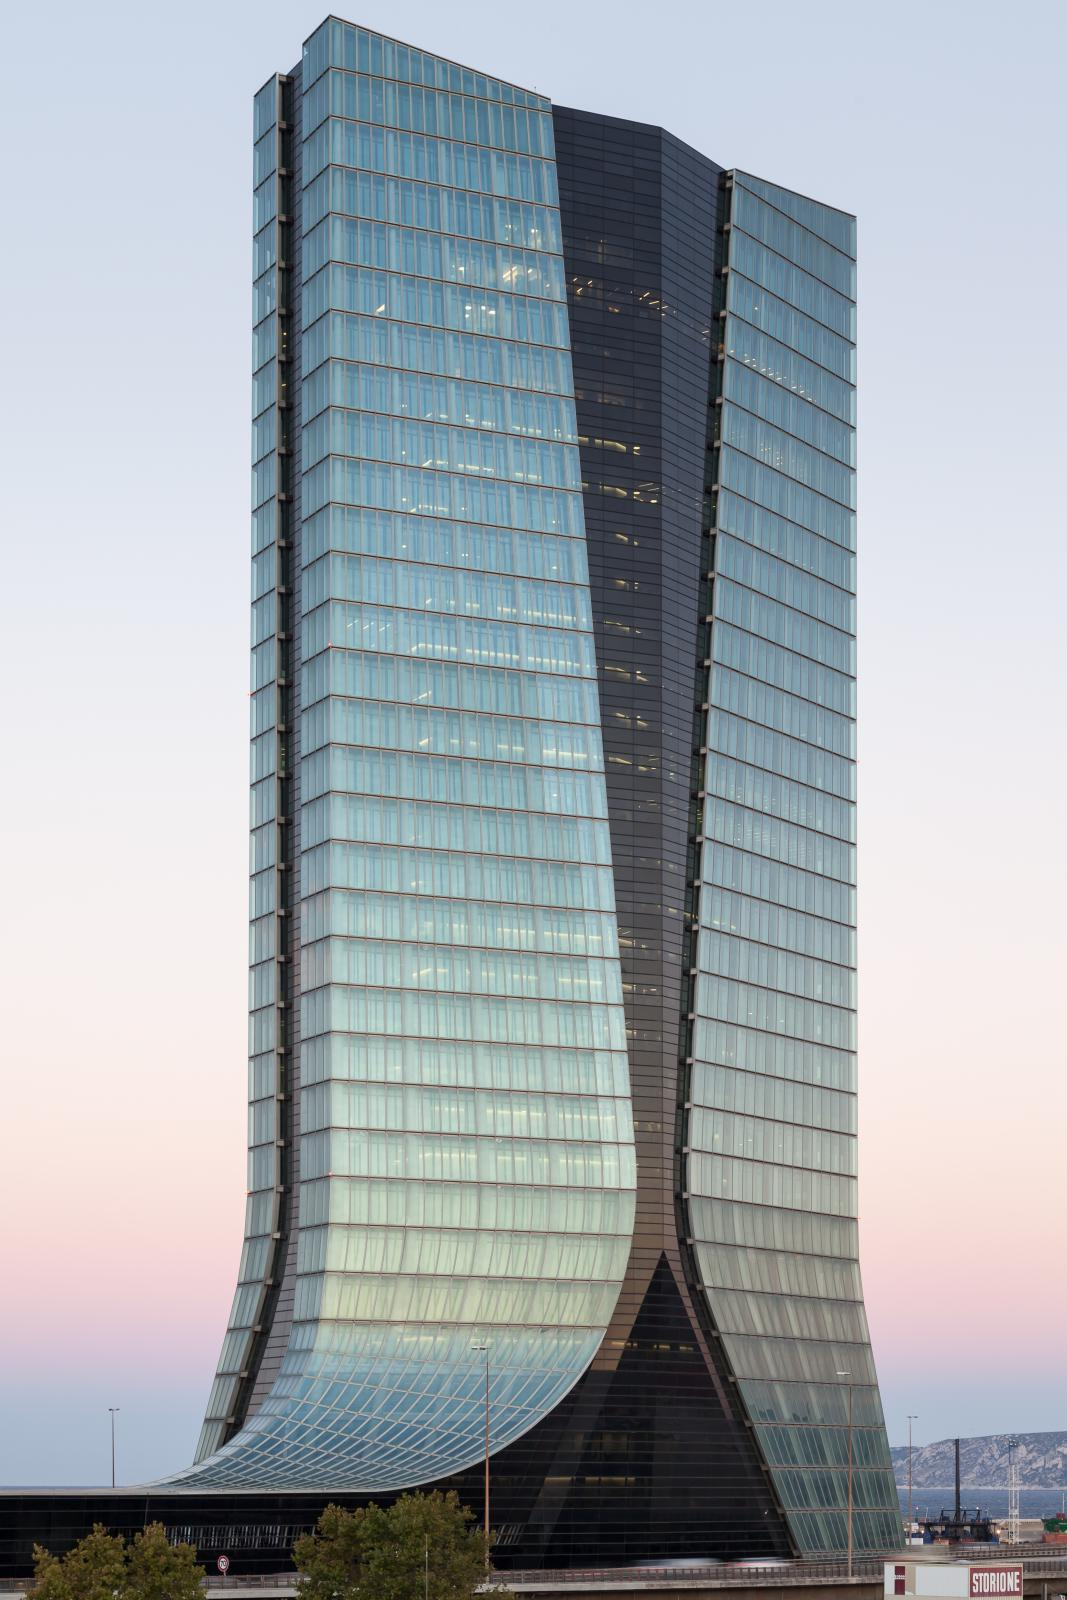 Photograph of CMA CGM Headquarters, designed by Zaha Hadid Architects and located in Marseille, France